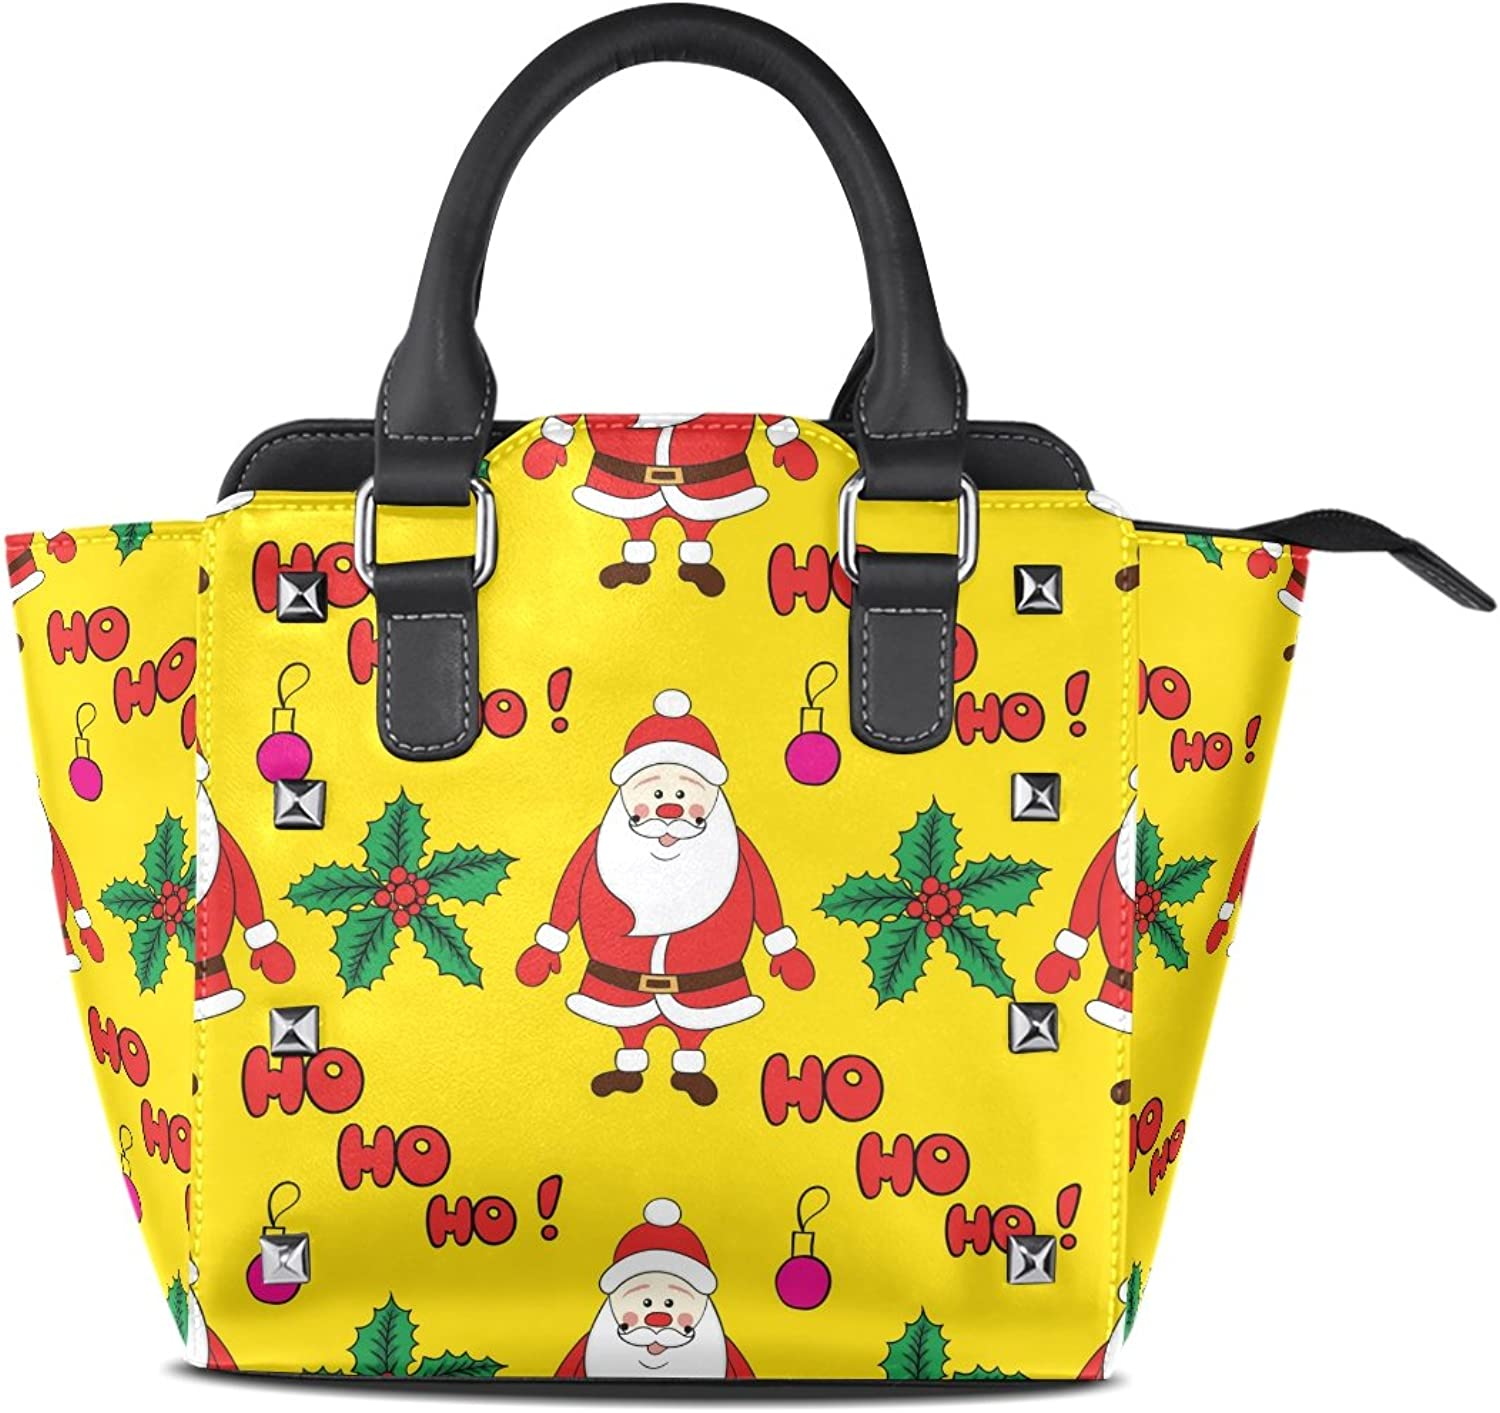 Sunlome Cartoon Christmas Father Santa Claus Print Handbags Women's PU Leather Top-Handle Shoulder Bags